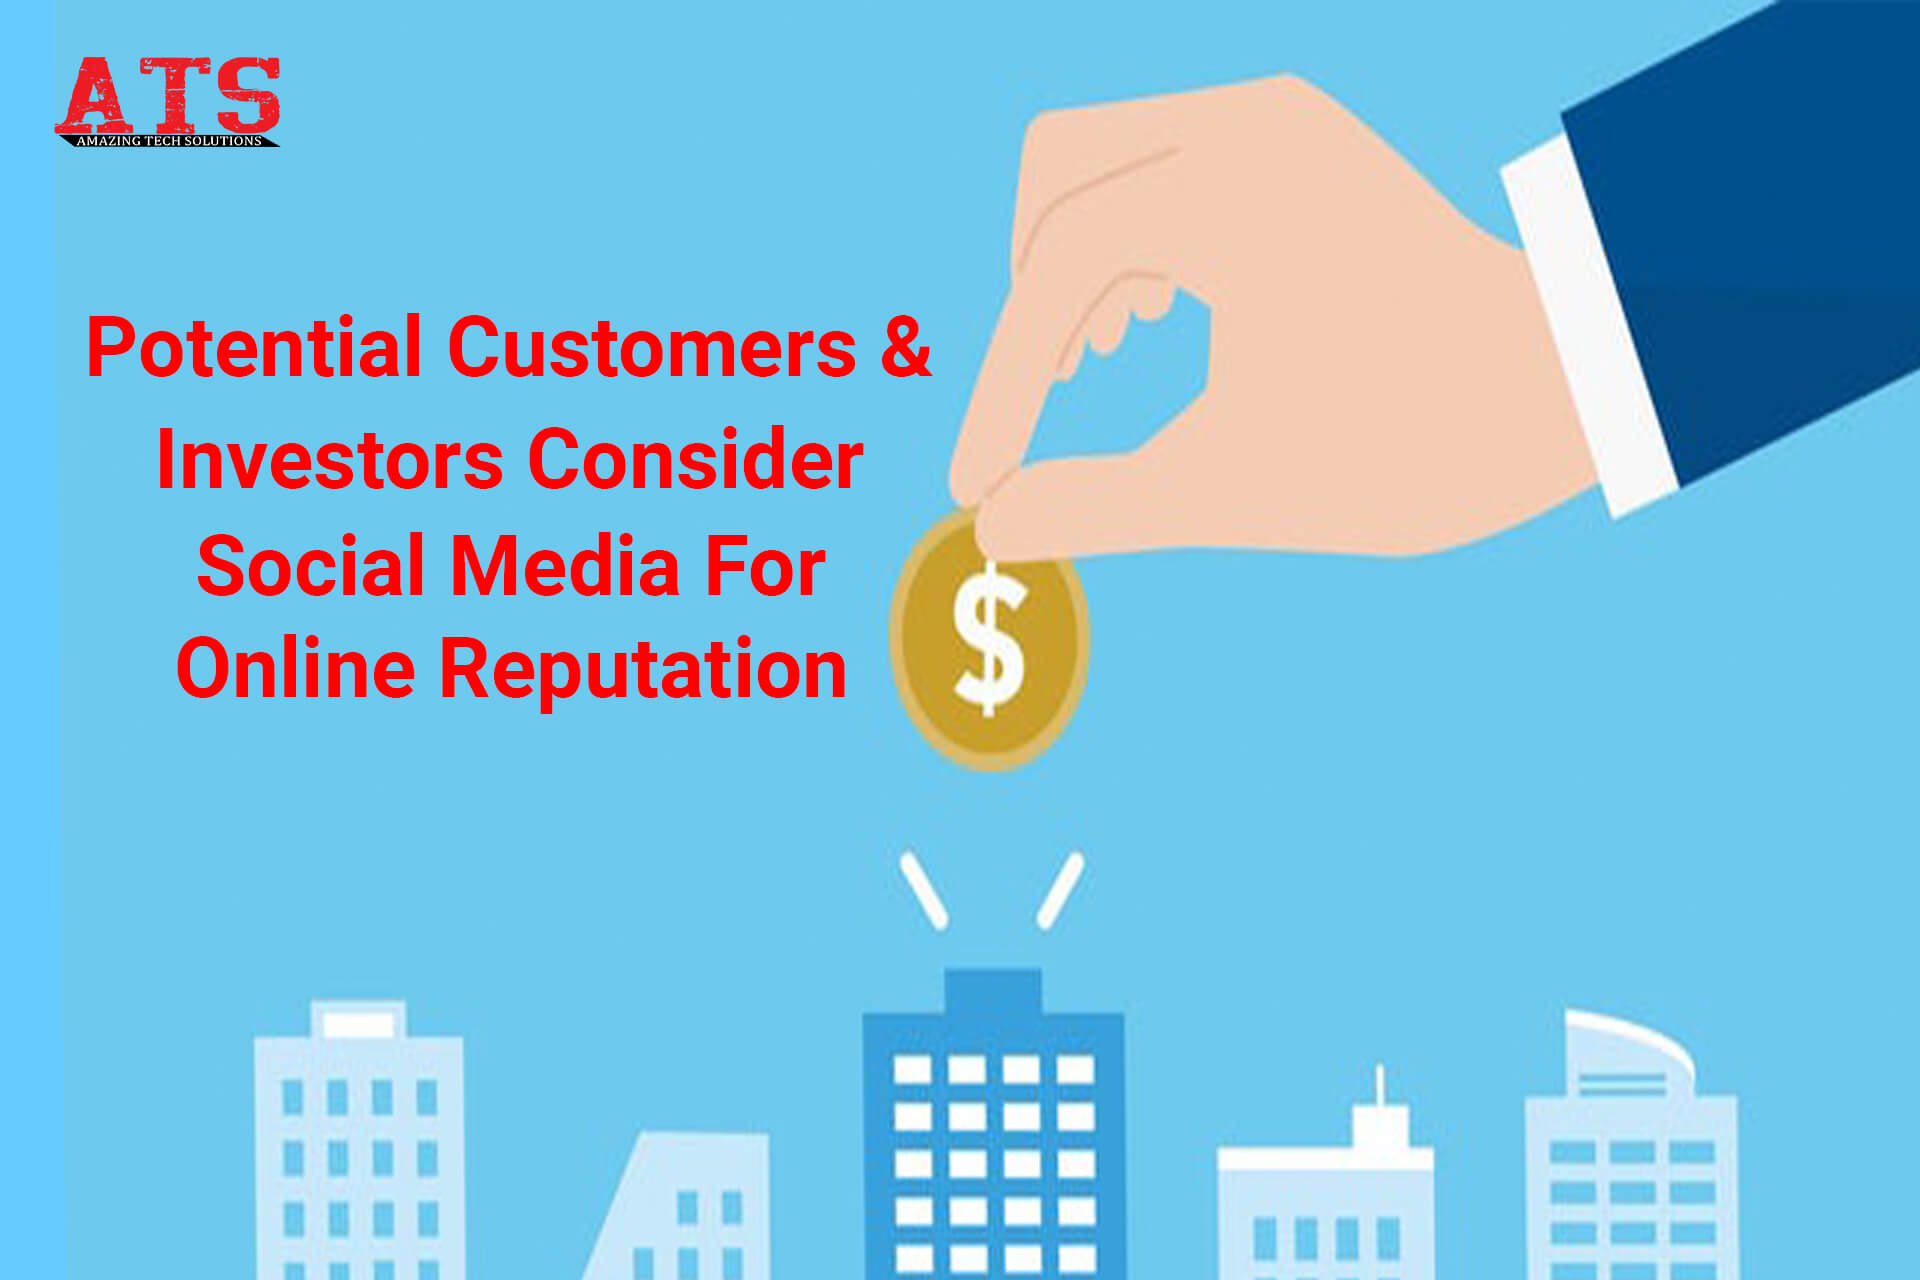 Potential Customers and Investors Consider Social Media For Online